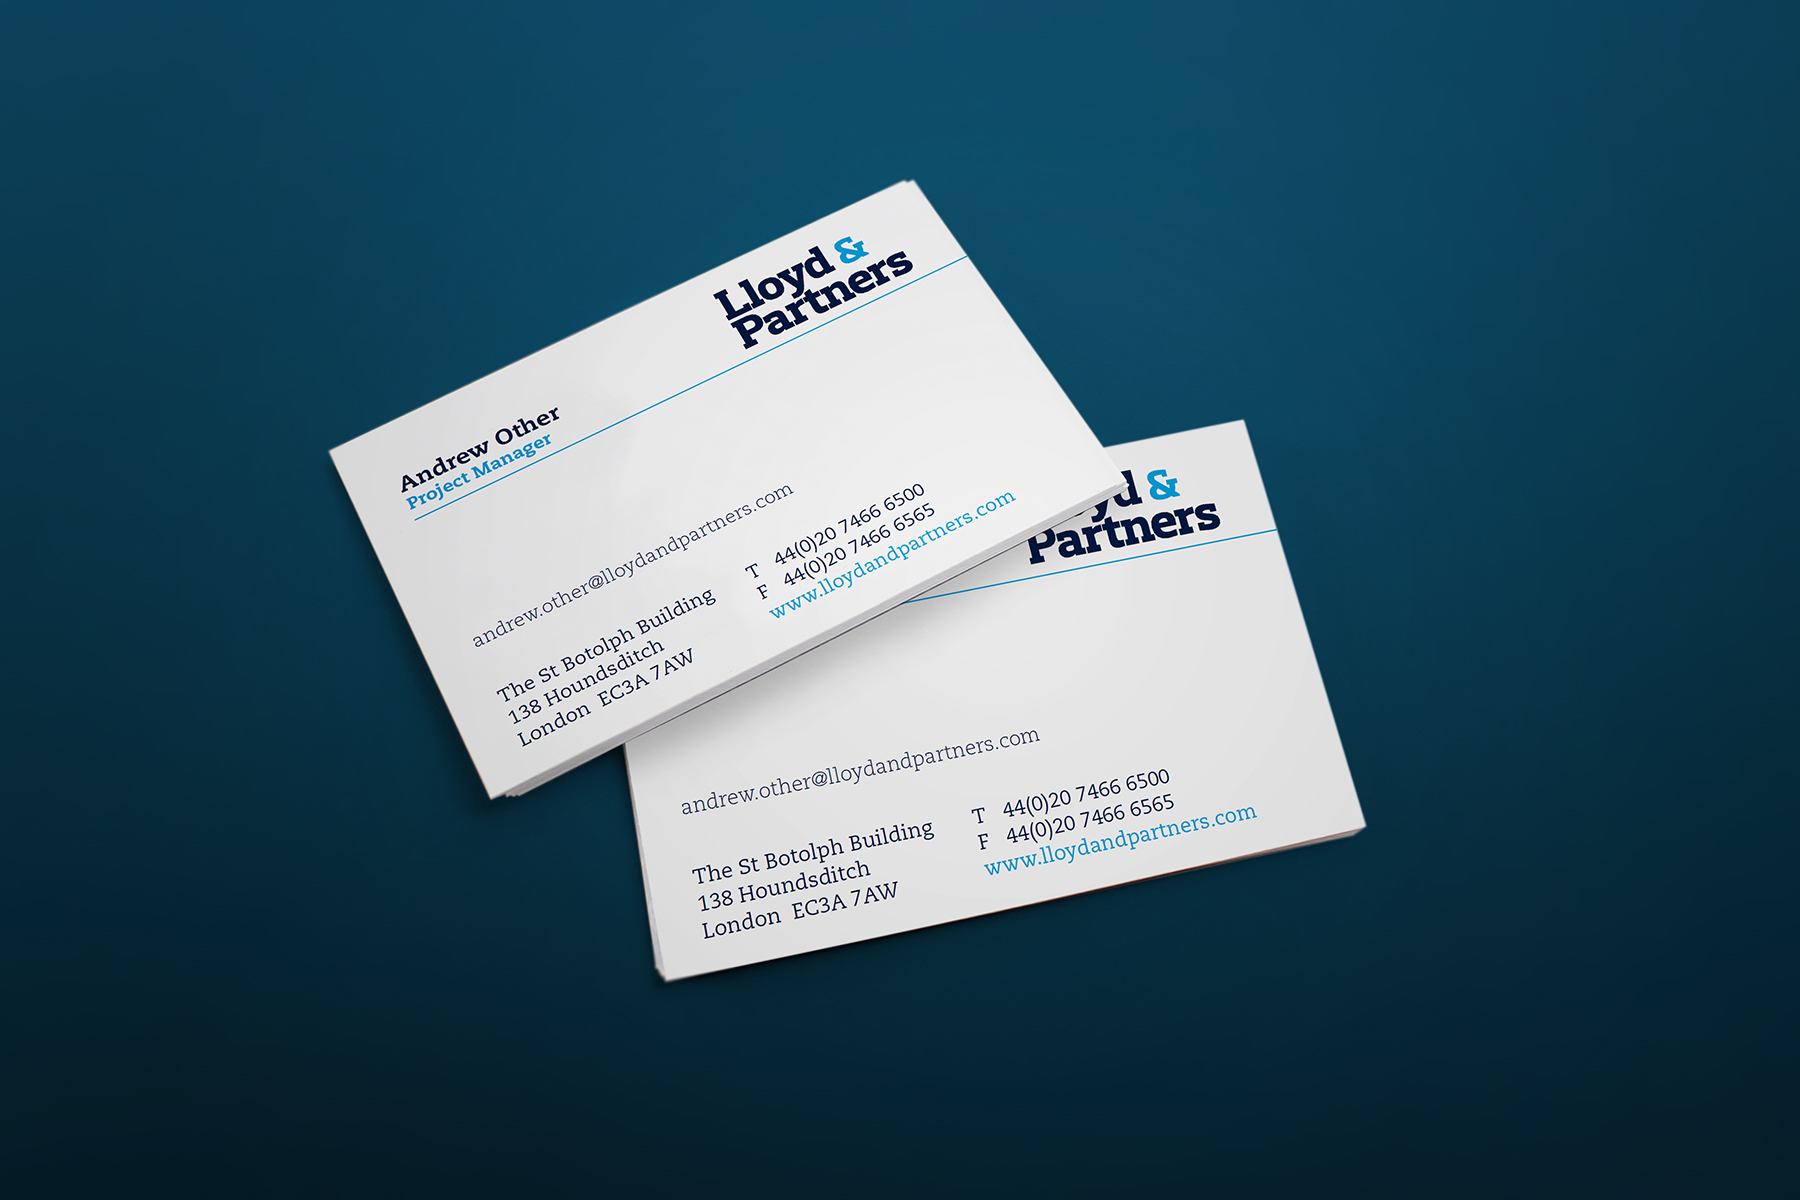 The business card is clear and concise, letting the other printed communications do the speaking.